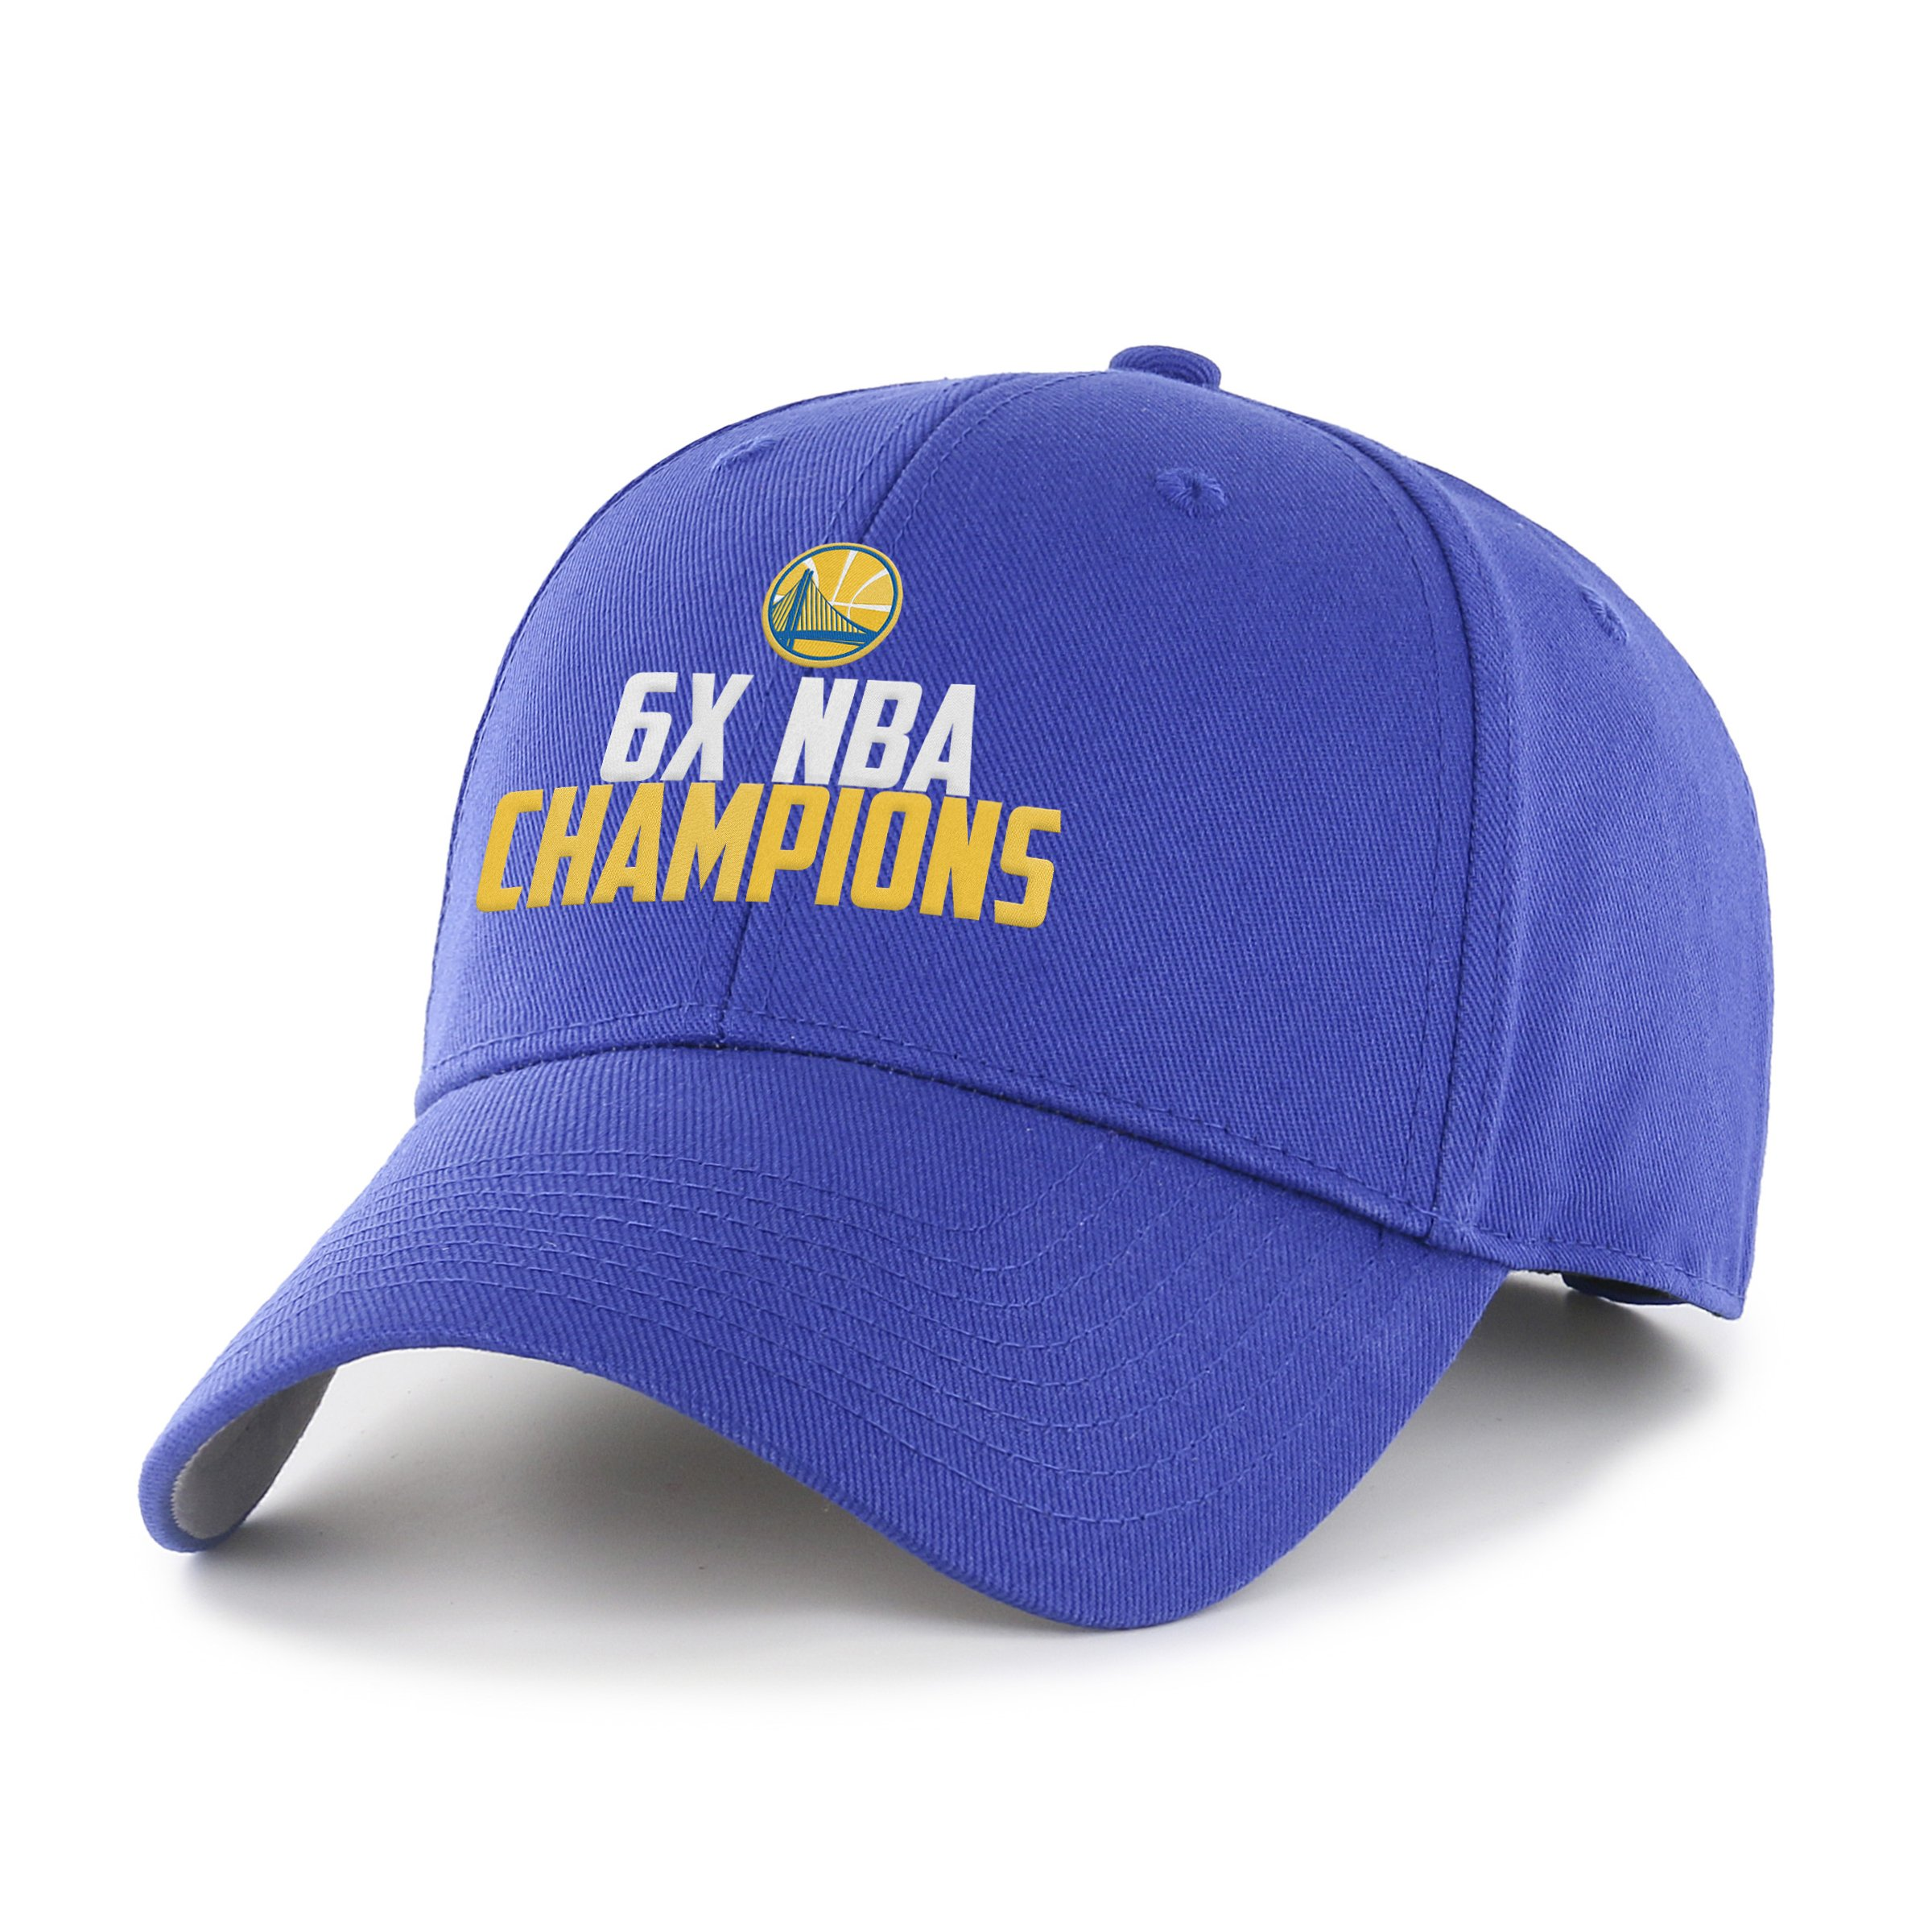 OTS NBA Golden State Warriors Unisex NBA 2018 Champions All-Star Adjustable Hat, Royal-Multi, One Size by OTS